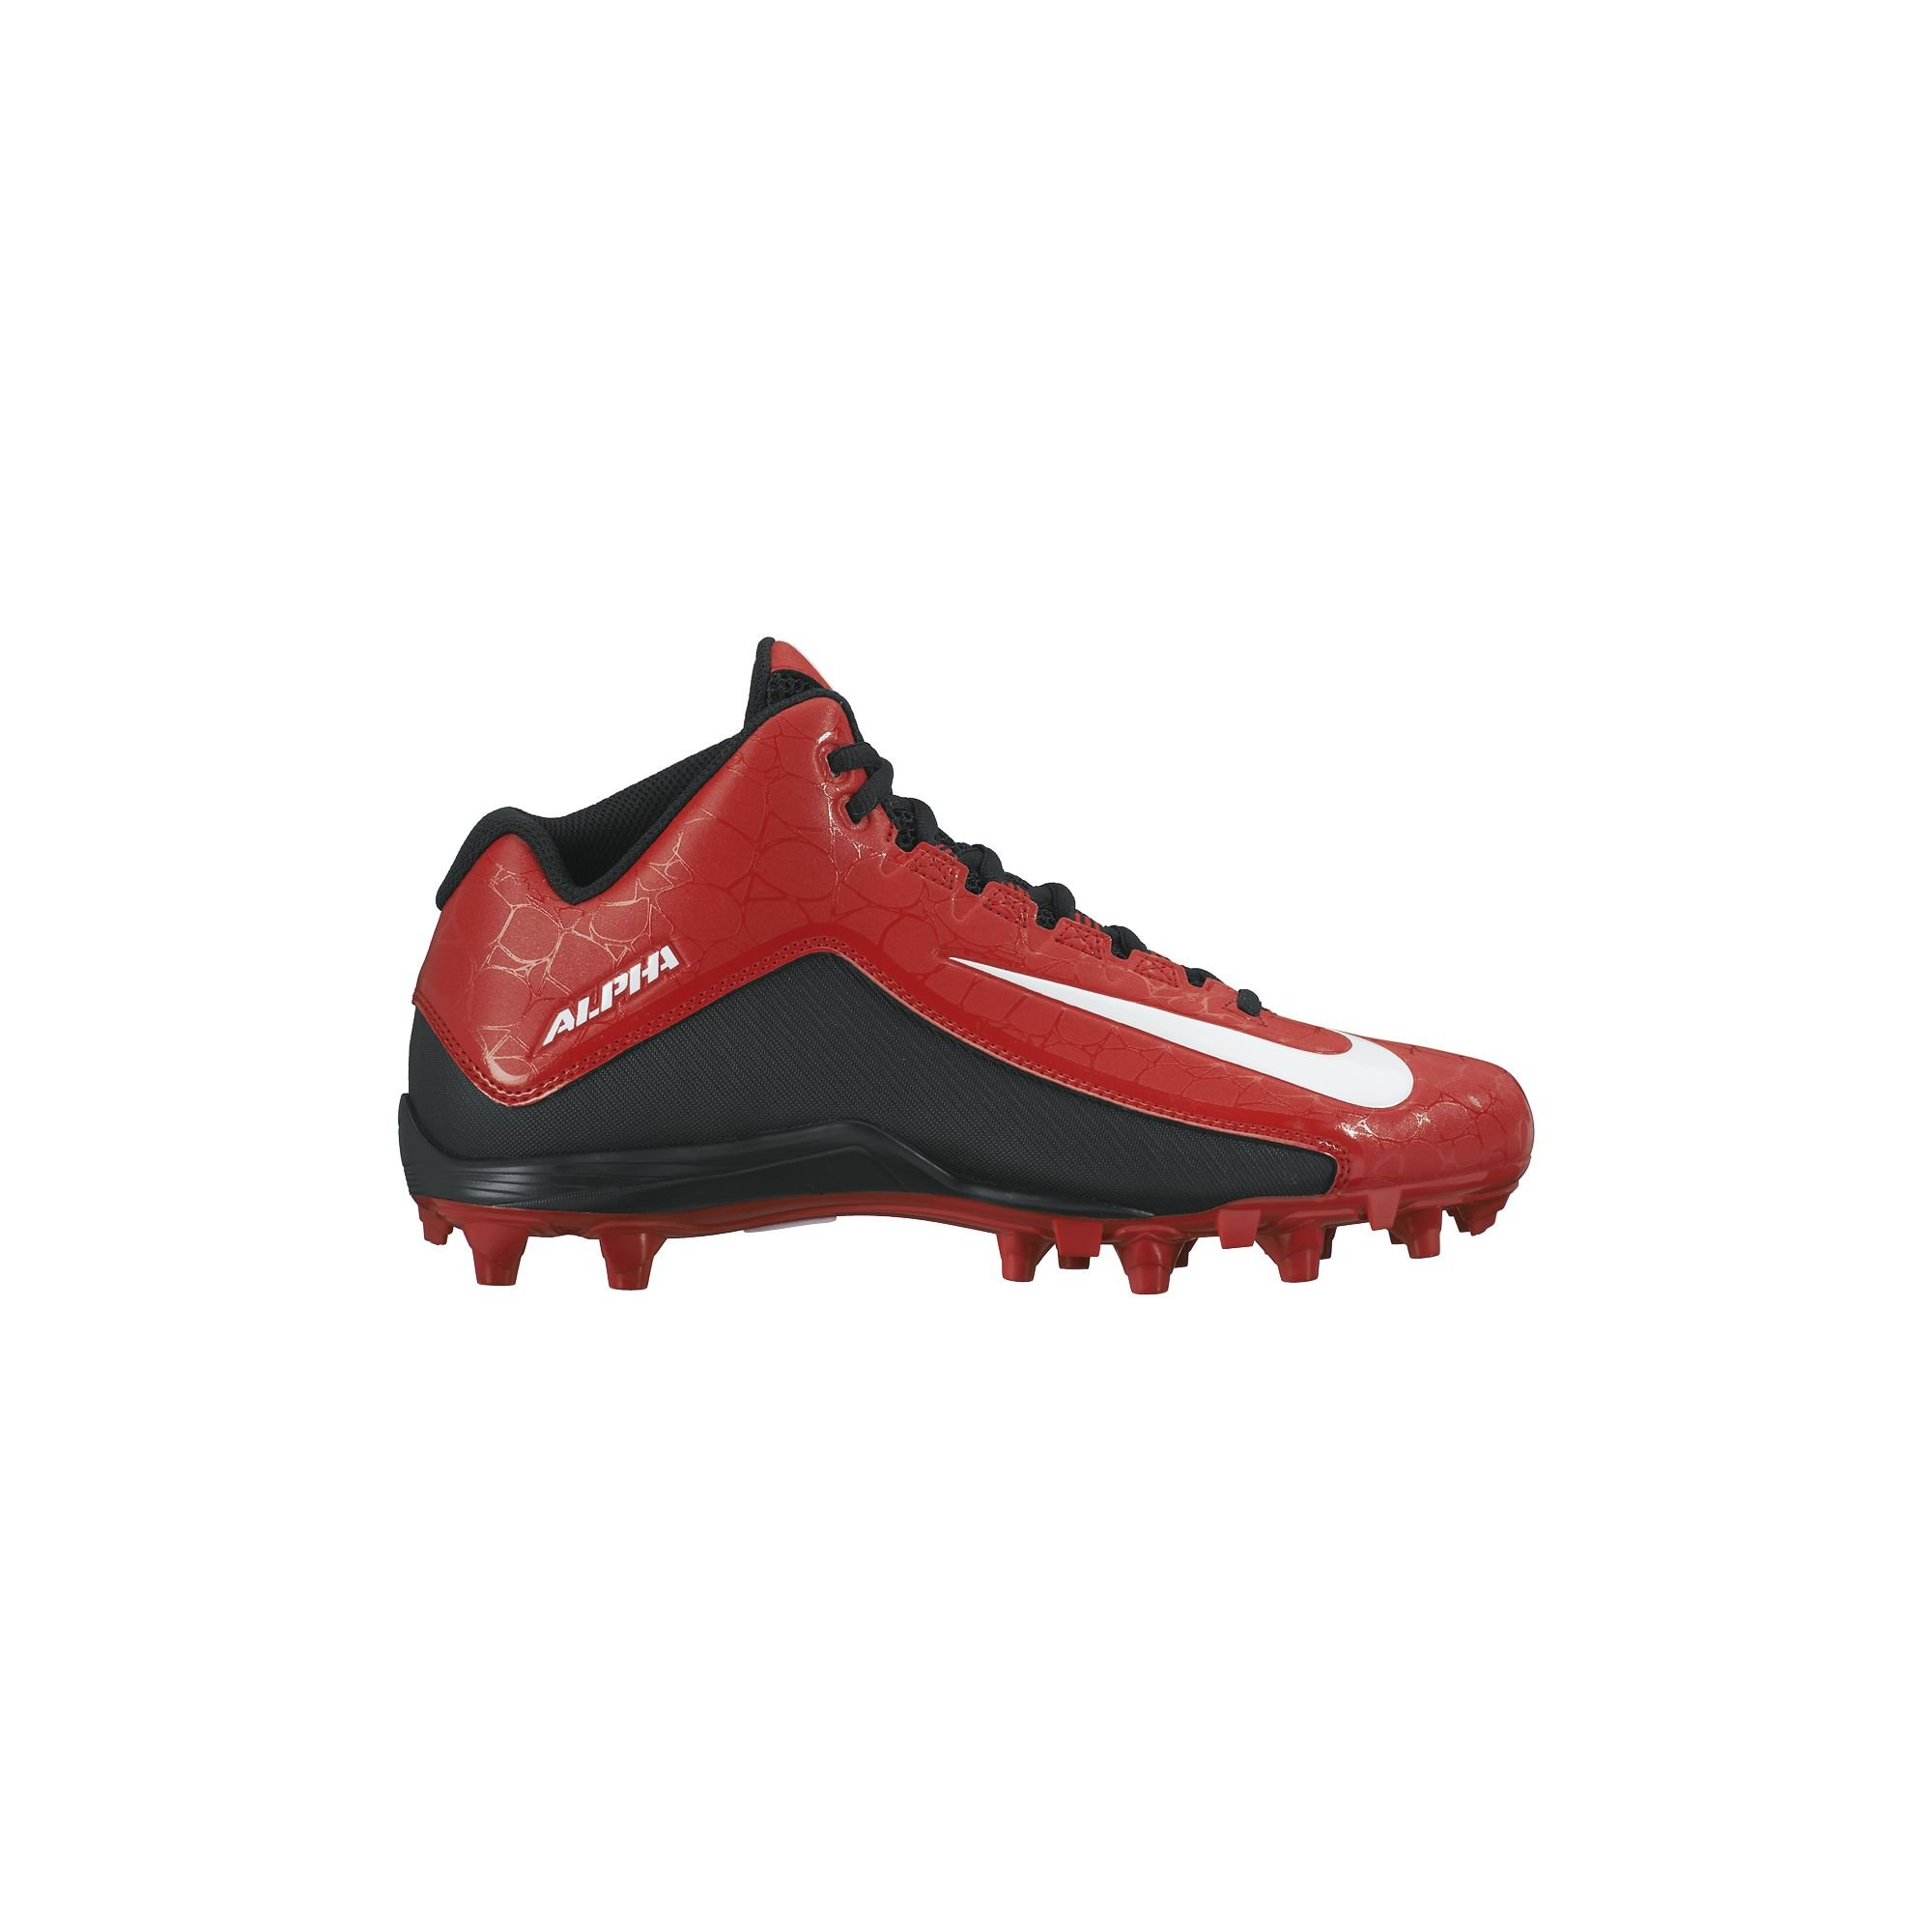 Nike Men's Alpha Strike 2 Three-Quarter Football Cleat University Red/Black/White Size 9.5 M US